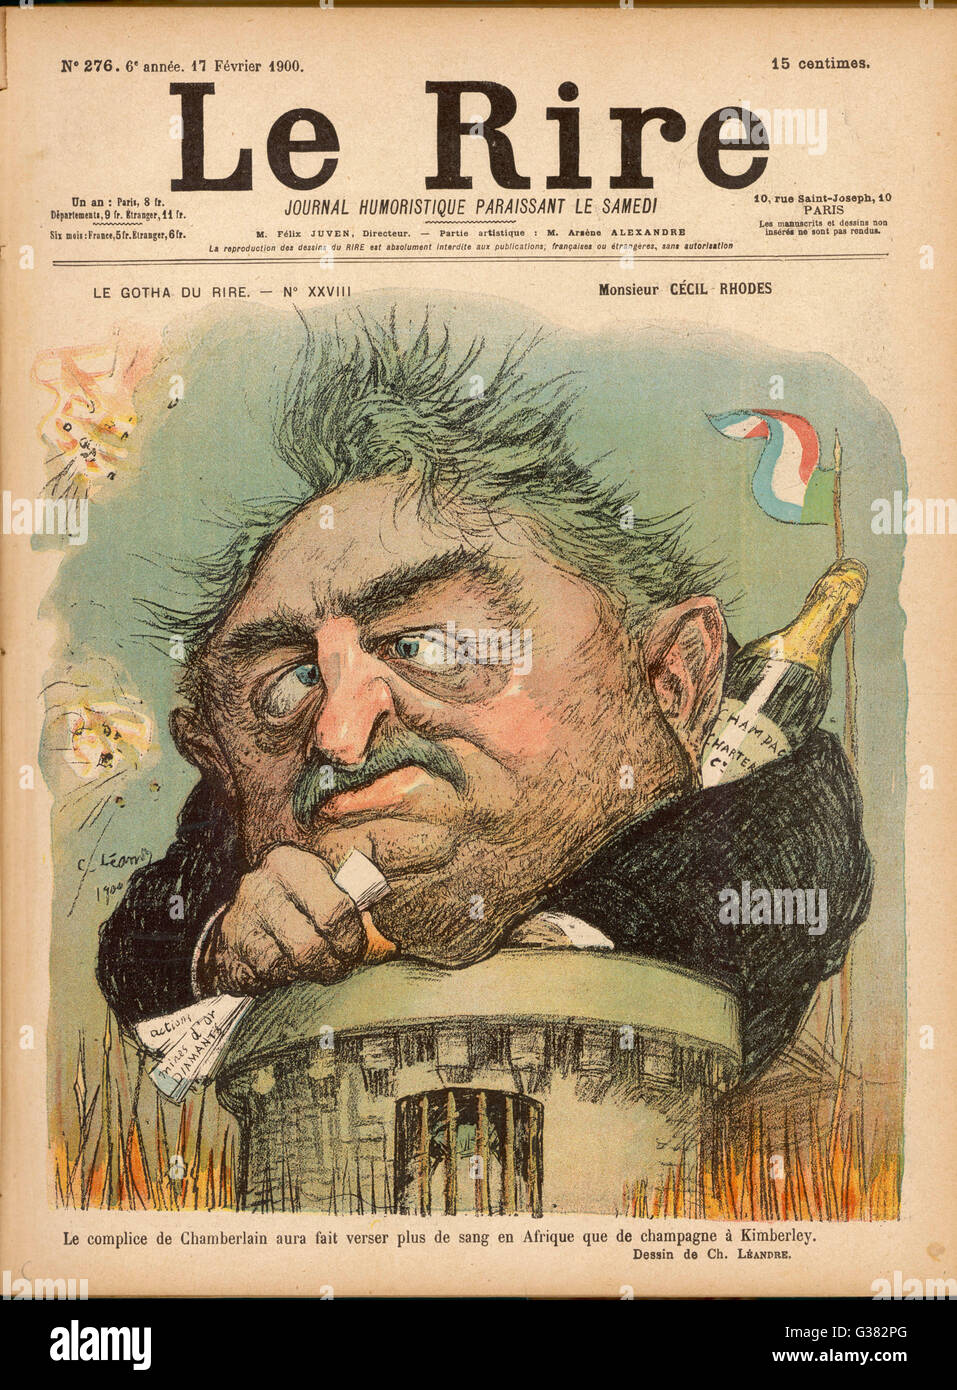 CECIL RHODES Statesman, entrepreneur and  imperialist in South Africa, caricatured by Leandre       Date: 1853  - Stock Image